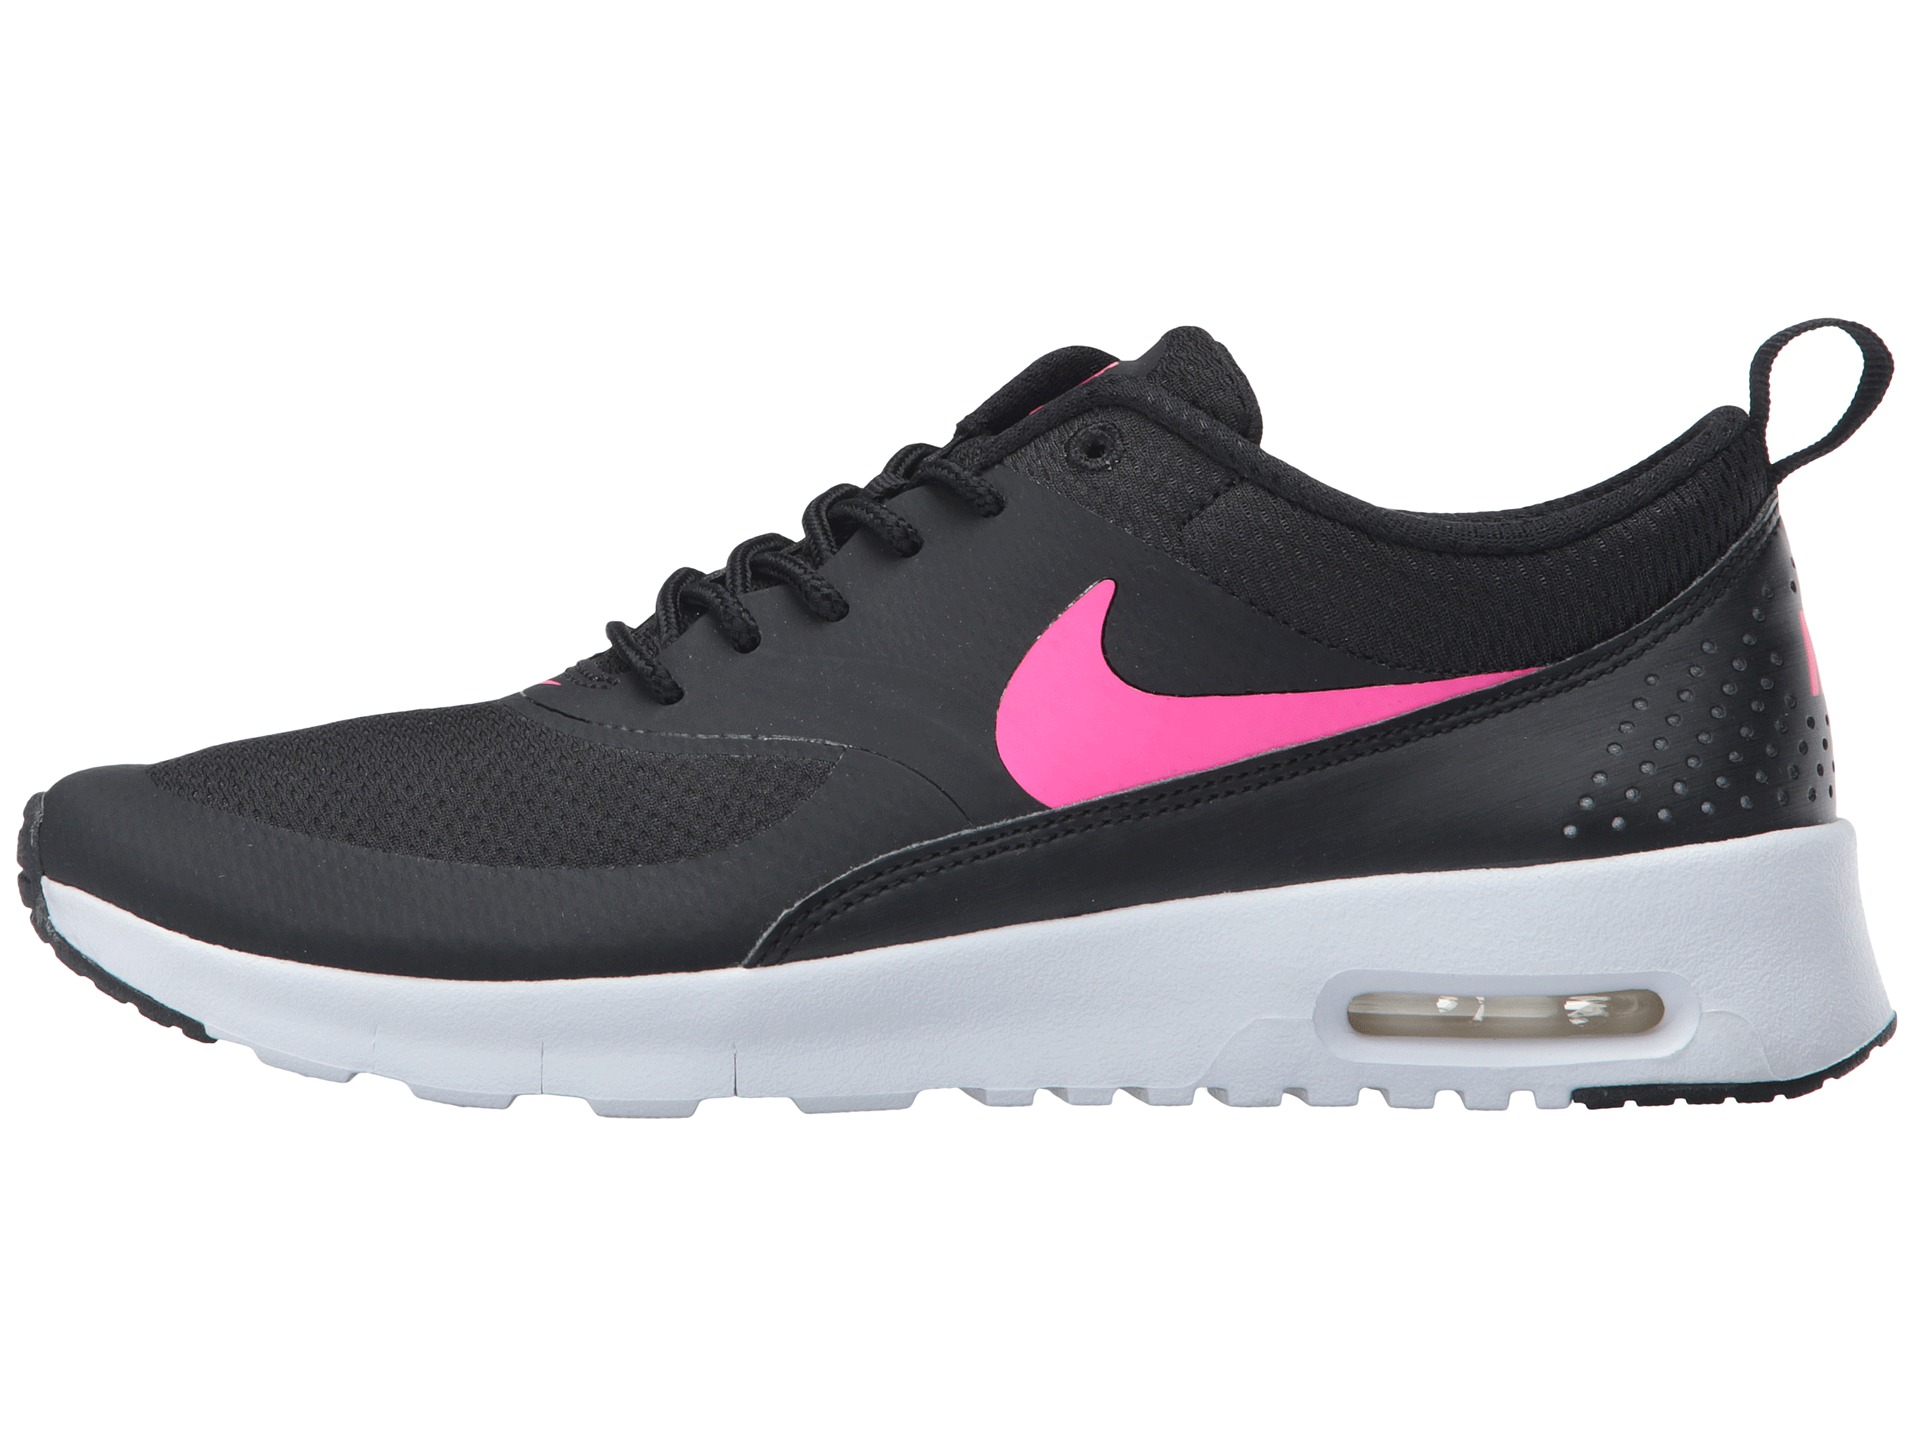 Air Zappos Thea Max Nike rCxBWdeo